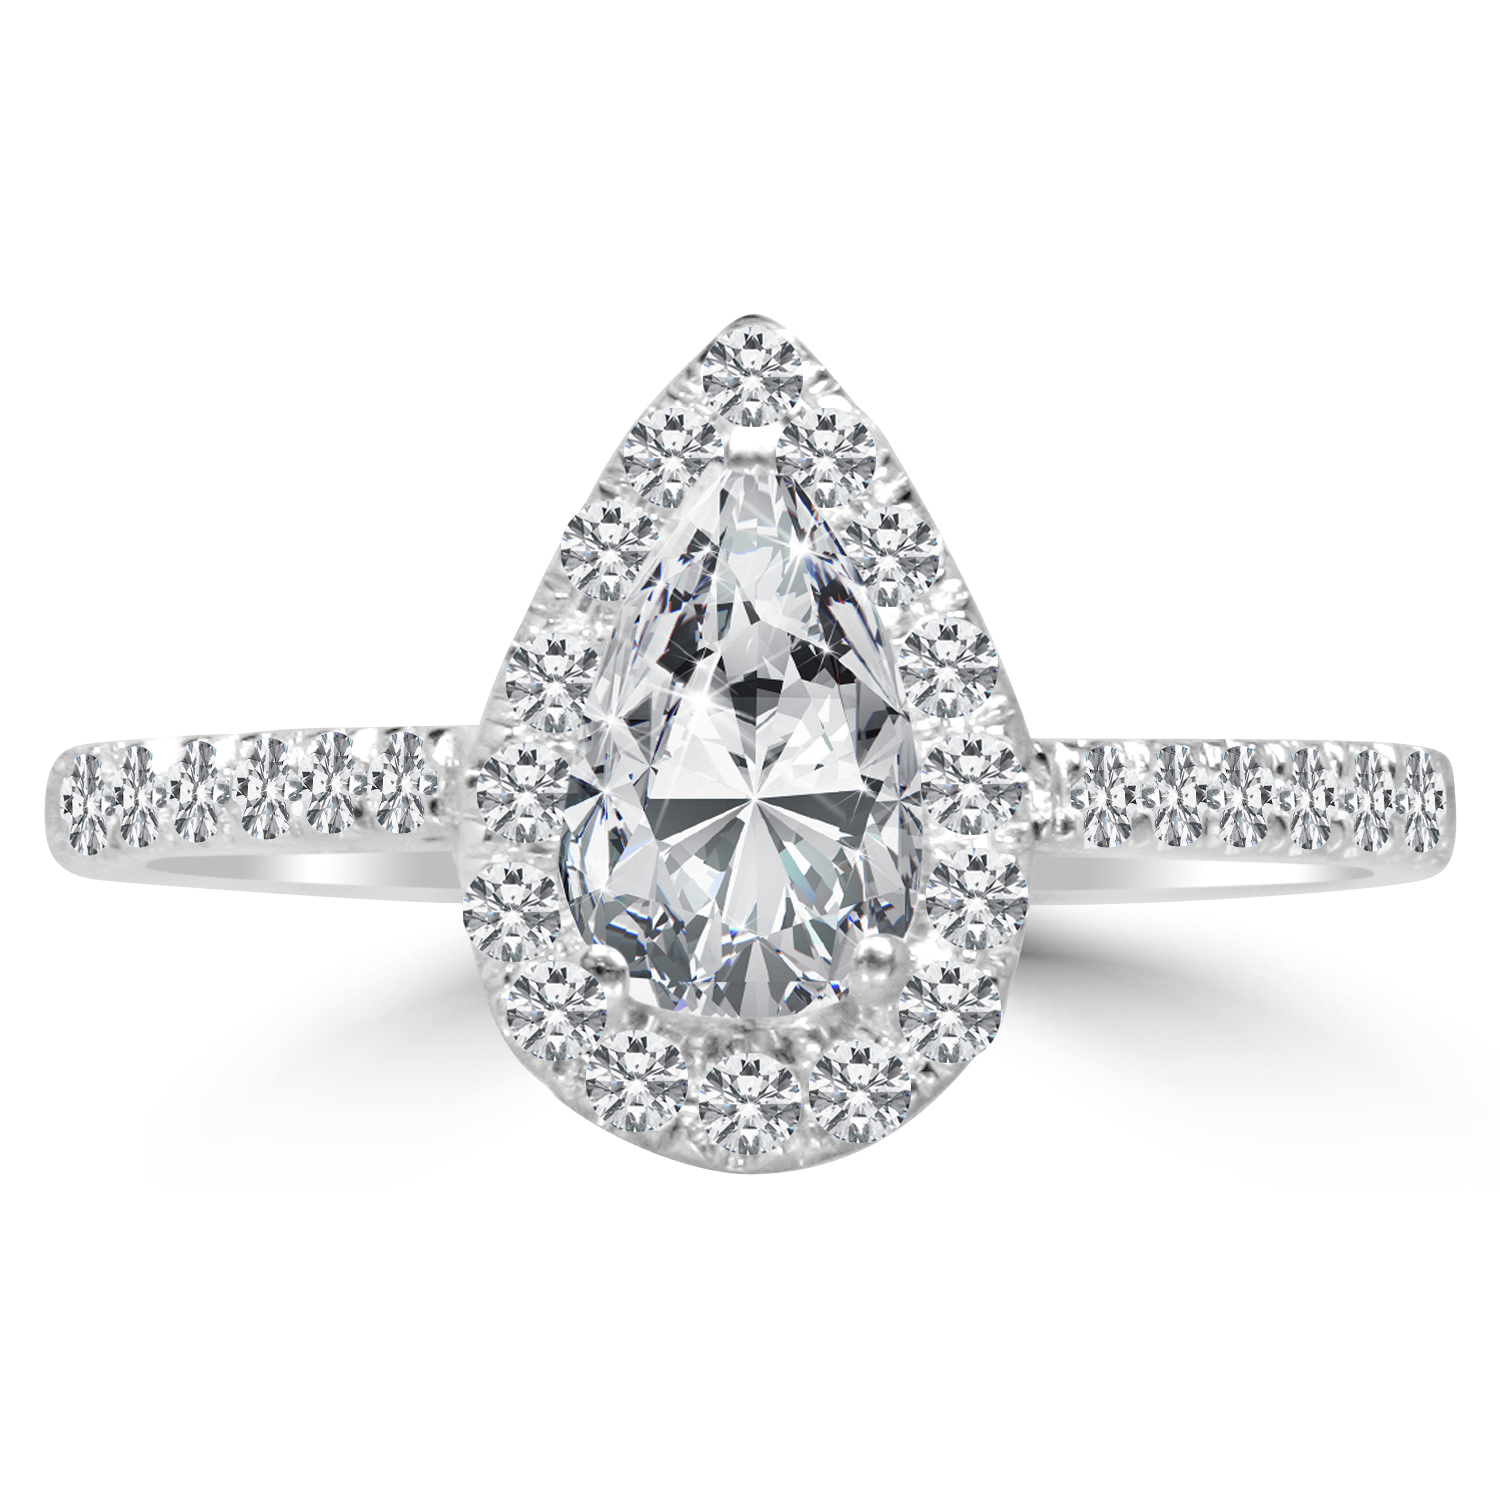 1 Ct Pear Cut Diamond Engagement Ring VS2 D 14K White Gold